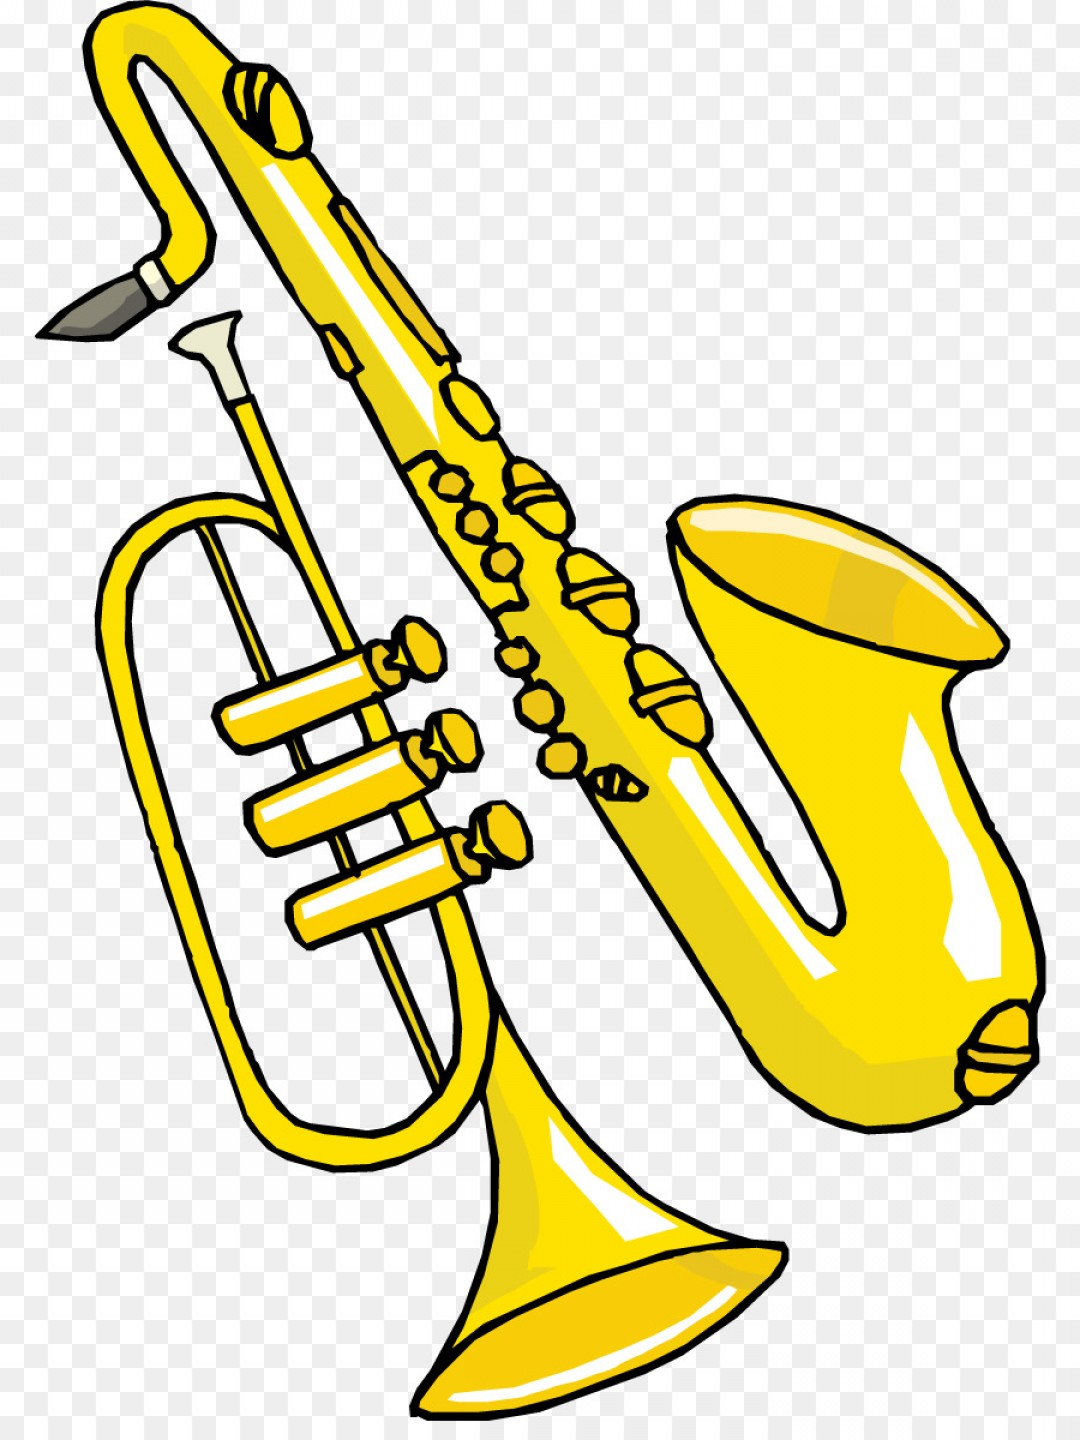 1080x1440 Png Saxophone Jazz Clip Art Cartoon Saxophone Vector Shopatcloth